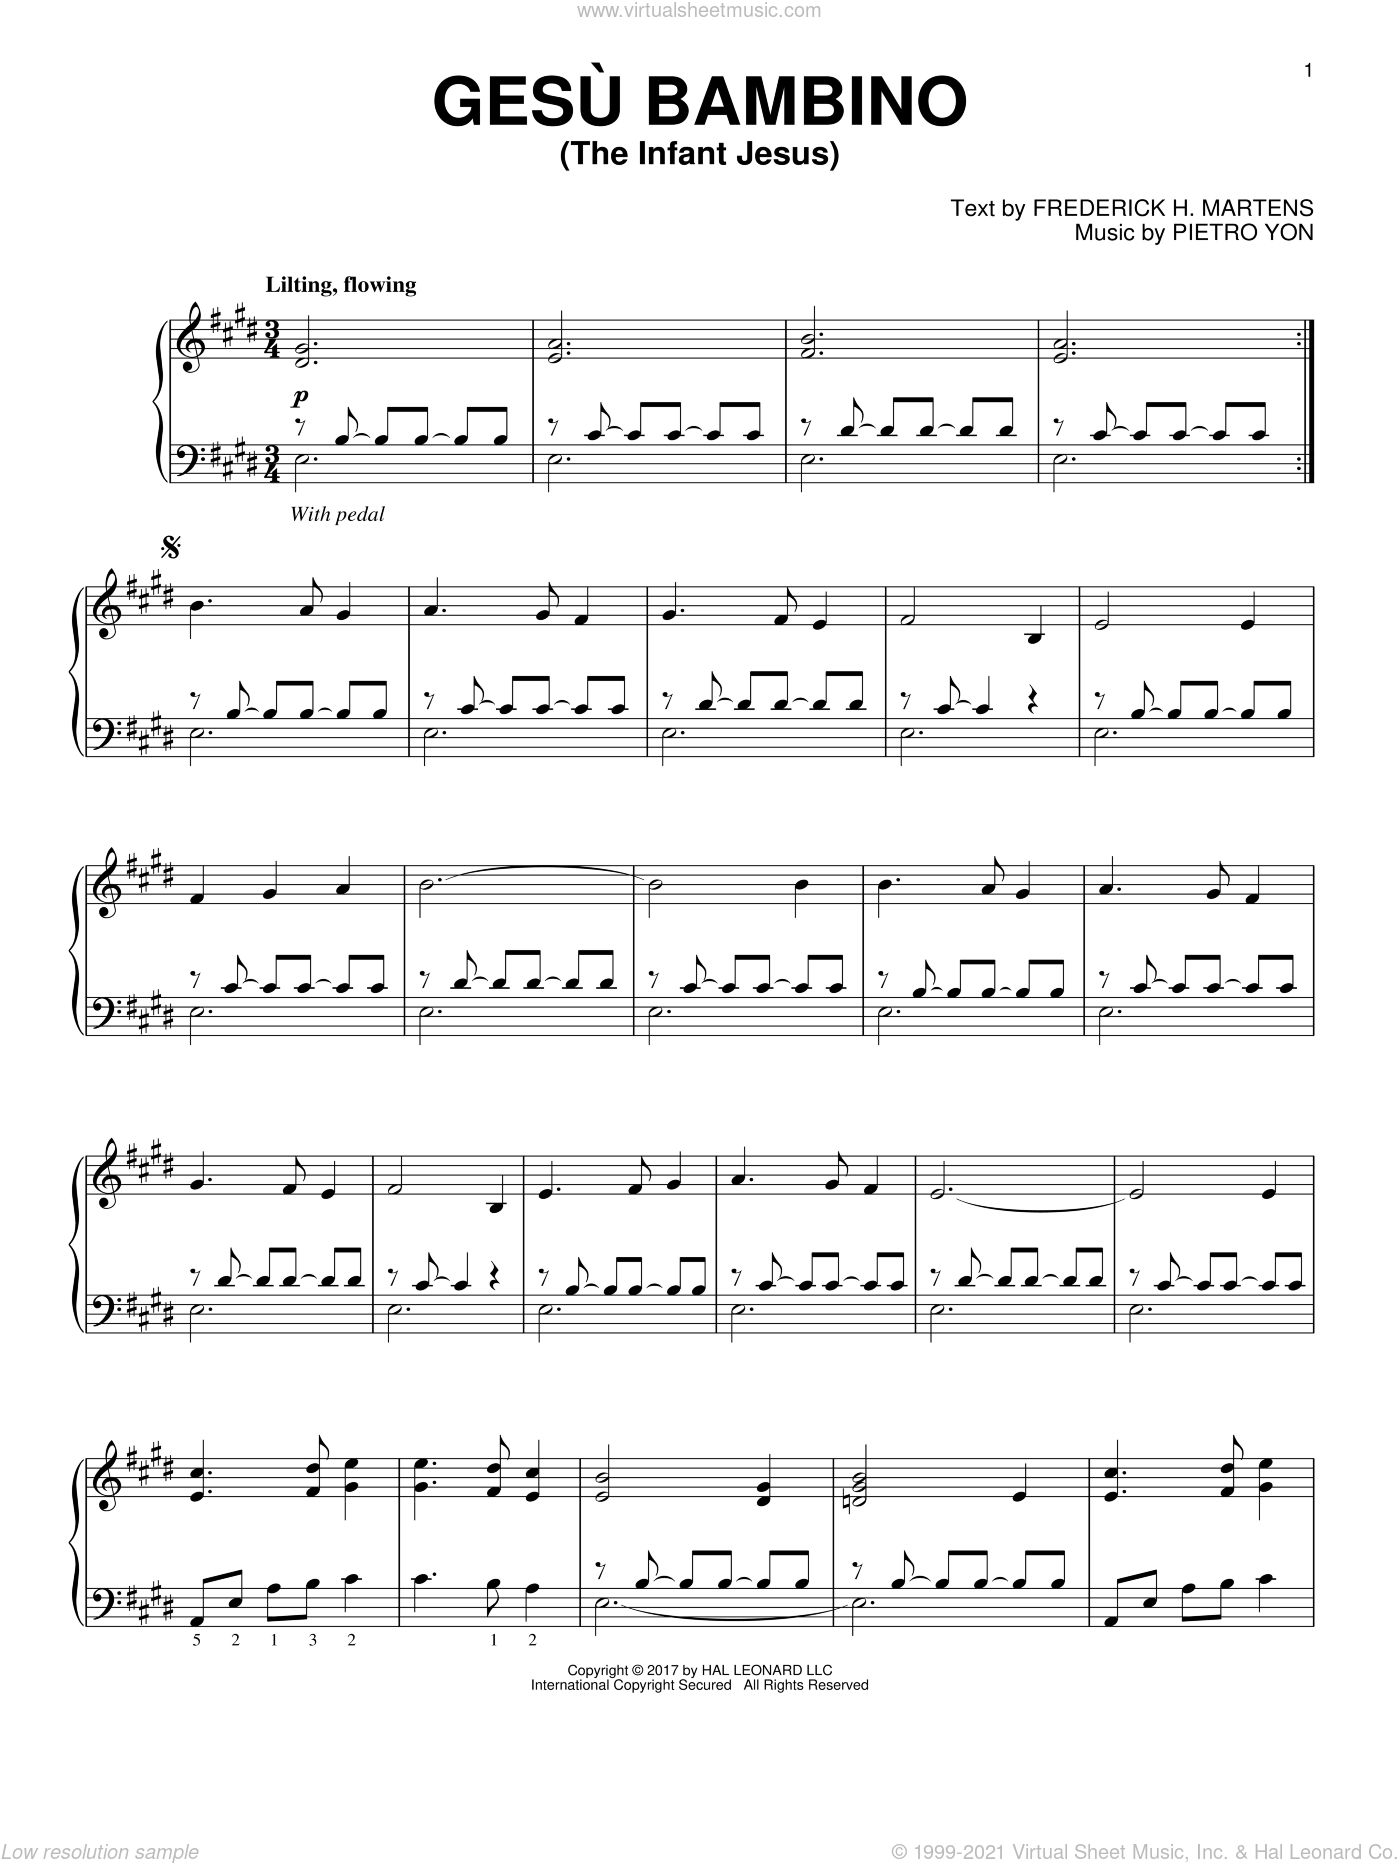 Gesu Bambino (The Infant Jesus) sheet music for piano solo by Pietro Yon and Frederick H. Martens, intermediate skill level